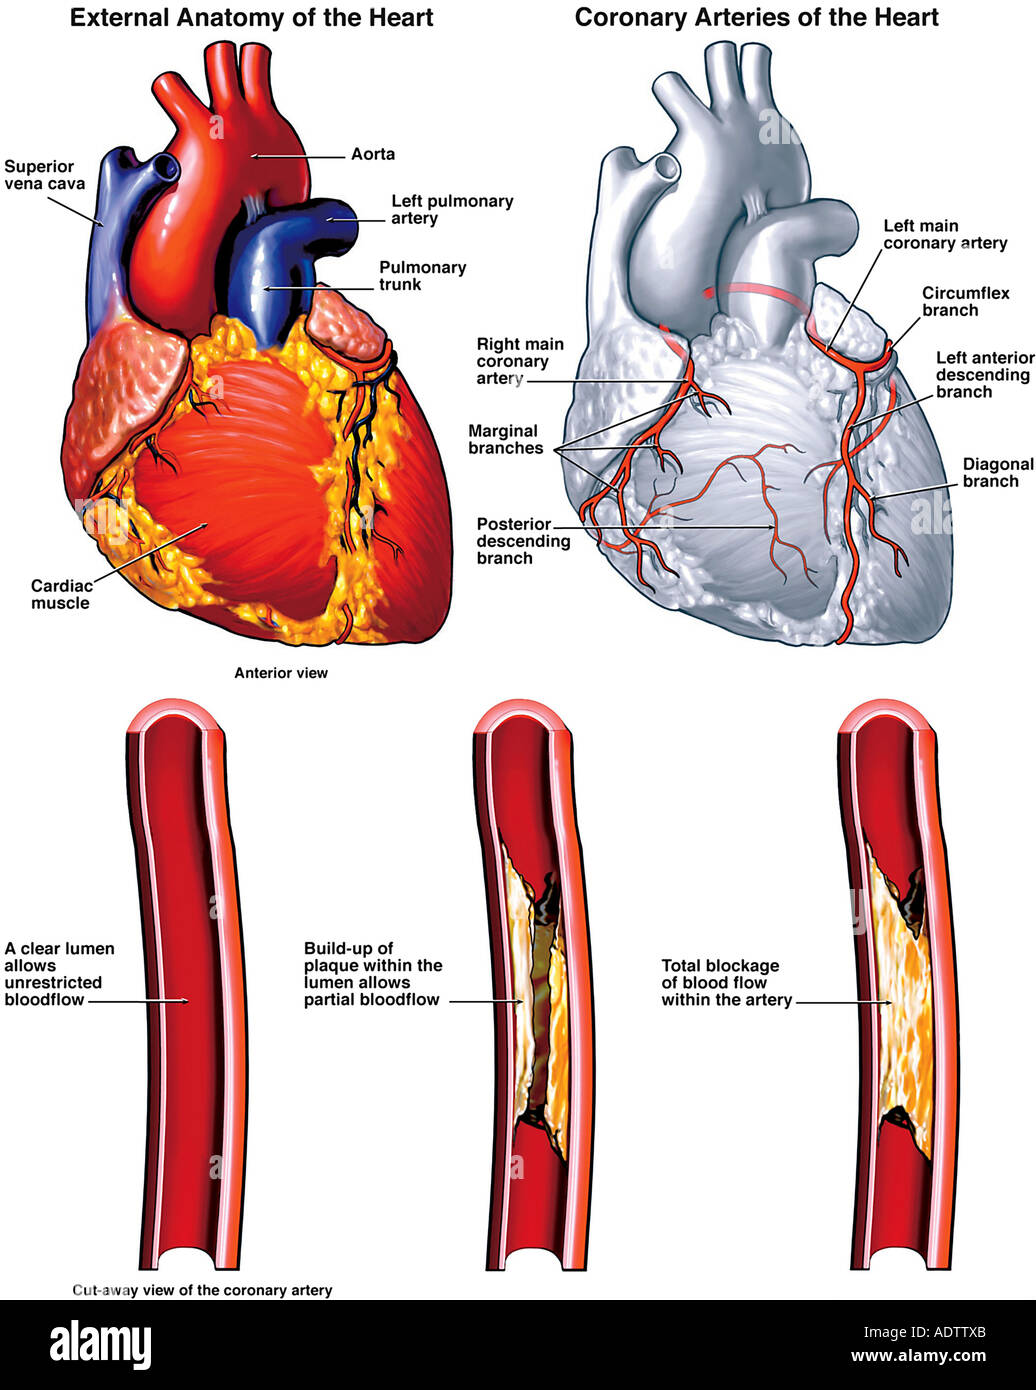 Arteriosclerotic Stockfotos & Arteriosclerotic Bilder - Alamy